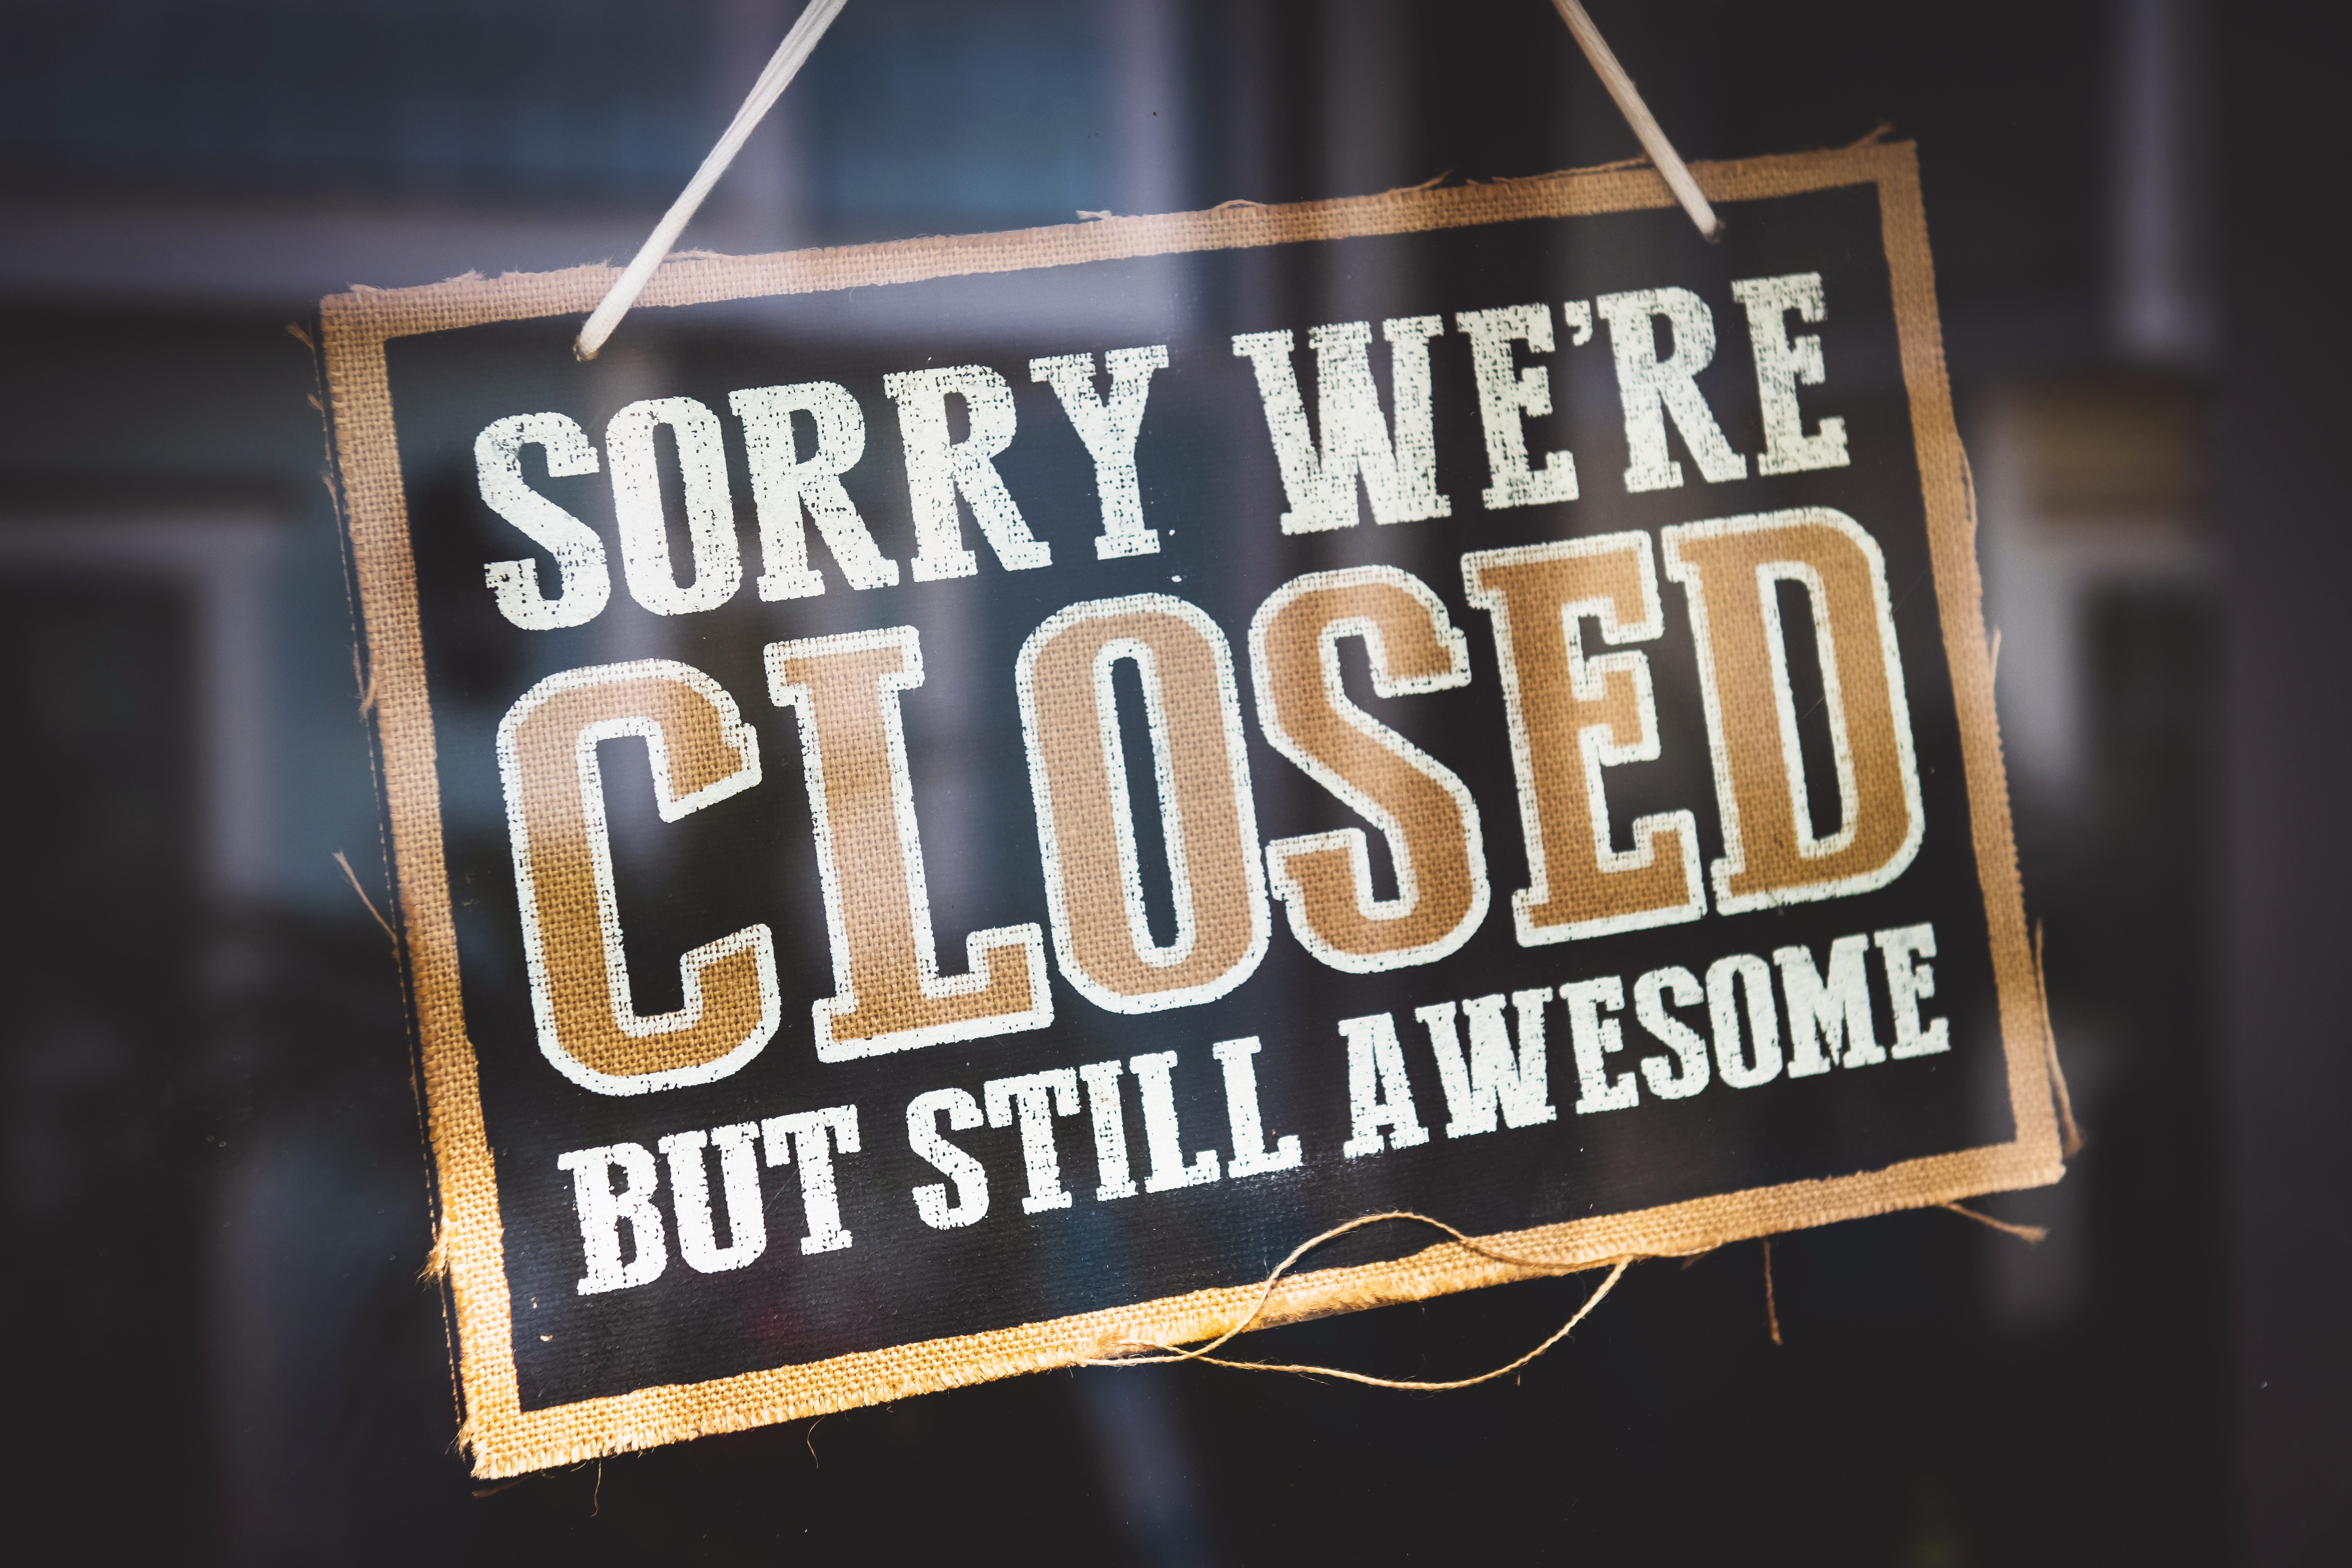 Sorry We're Closed - but still awesome